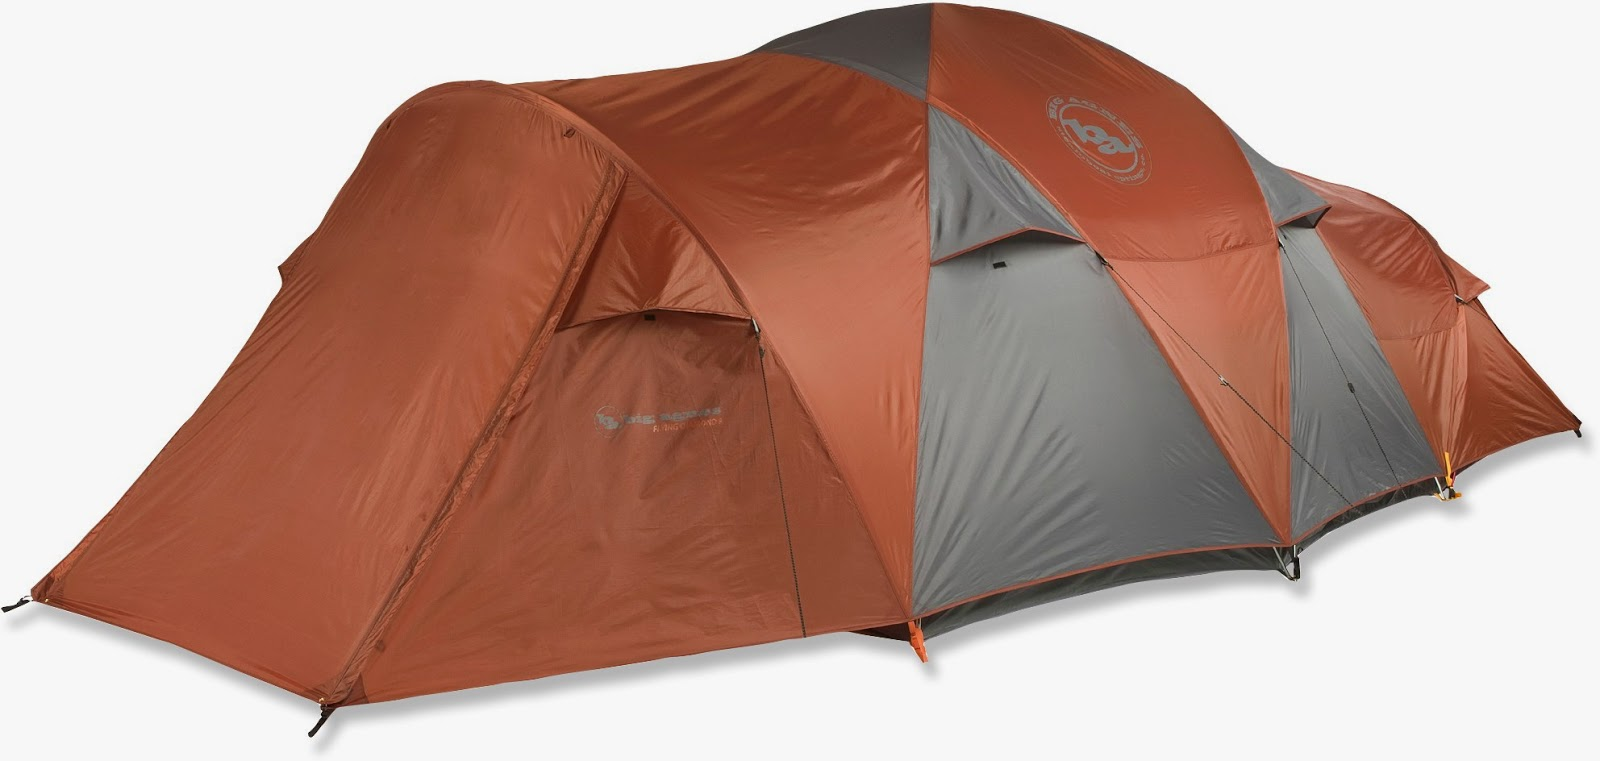 #BIG AGNES FLYING DIAMOND 8 TENT REVIEW & BIG AGNES FLYING DIAMOND 8 TENT REVIEW | THE GOOD STUFF REVIEWS